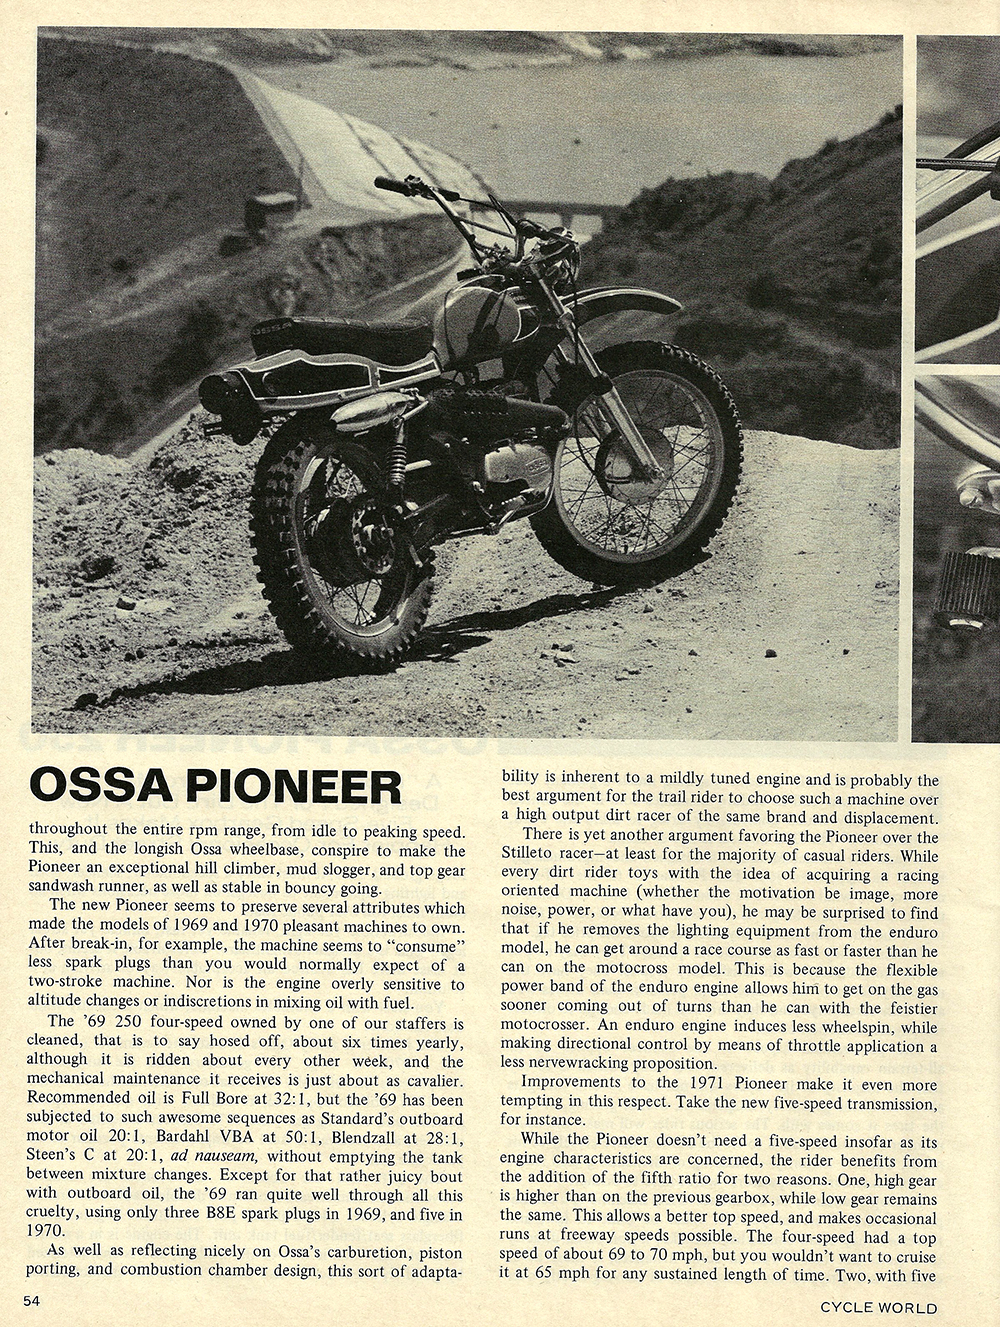 1971 Ossa Pioneer 250 road test 02.jpg